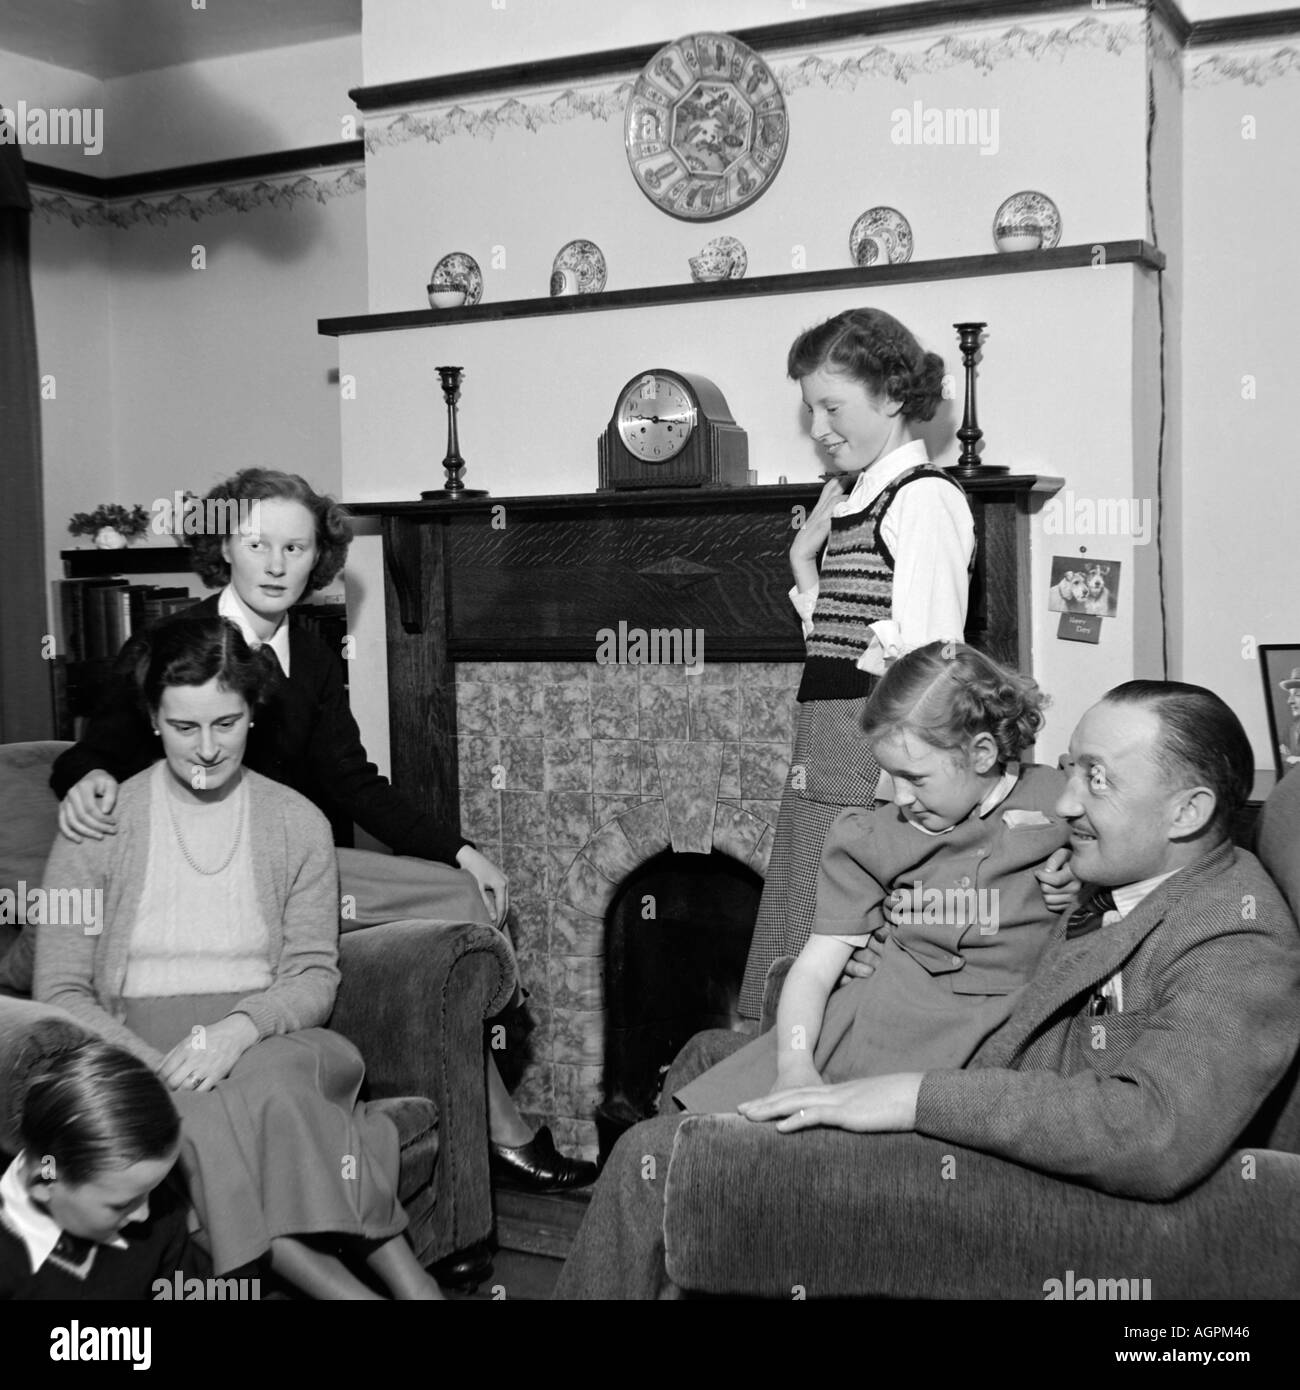 OLD VINTAGE BLACK AND WHITE FAMILY SNAPSHOT PHOTOGRAPH OF MOTHER FATHER AND FOUR CHILDREN RELAXING IN LIVING ROOM OF HOUSE 1950 - Stock Image